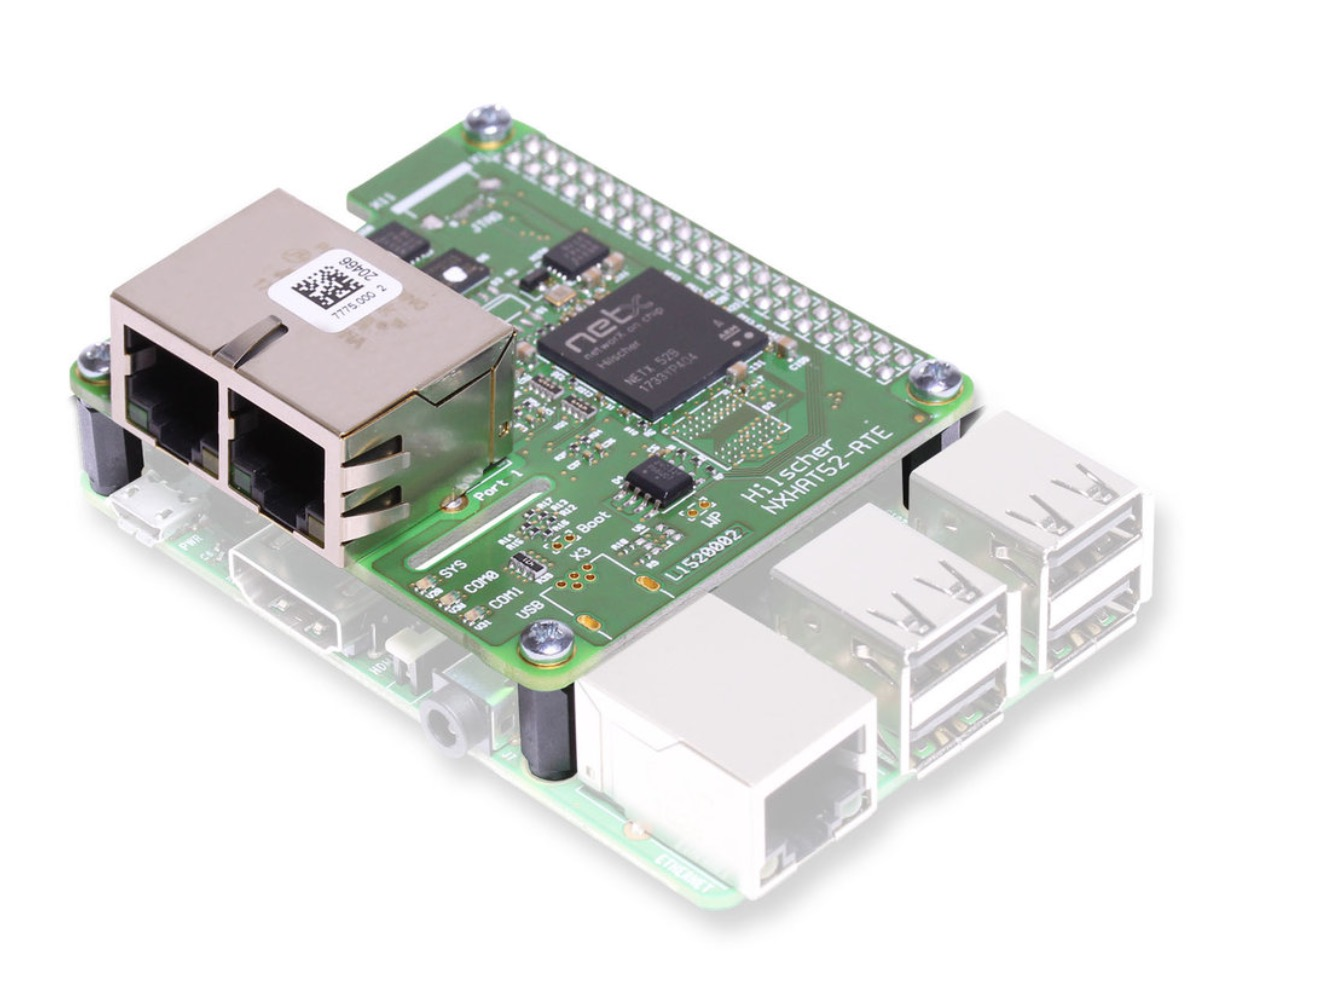 netHAT - Real-Time Ethernet Slave Interface For Raspberry With ProfiNet, Ethernet I/P, EtherCAT Firmware Options